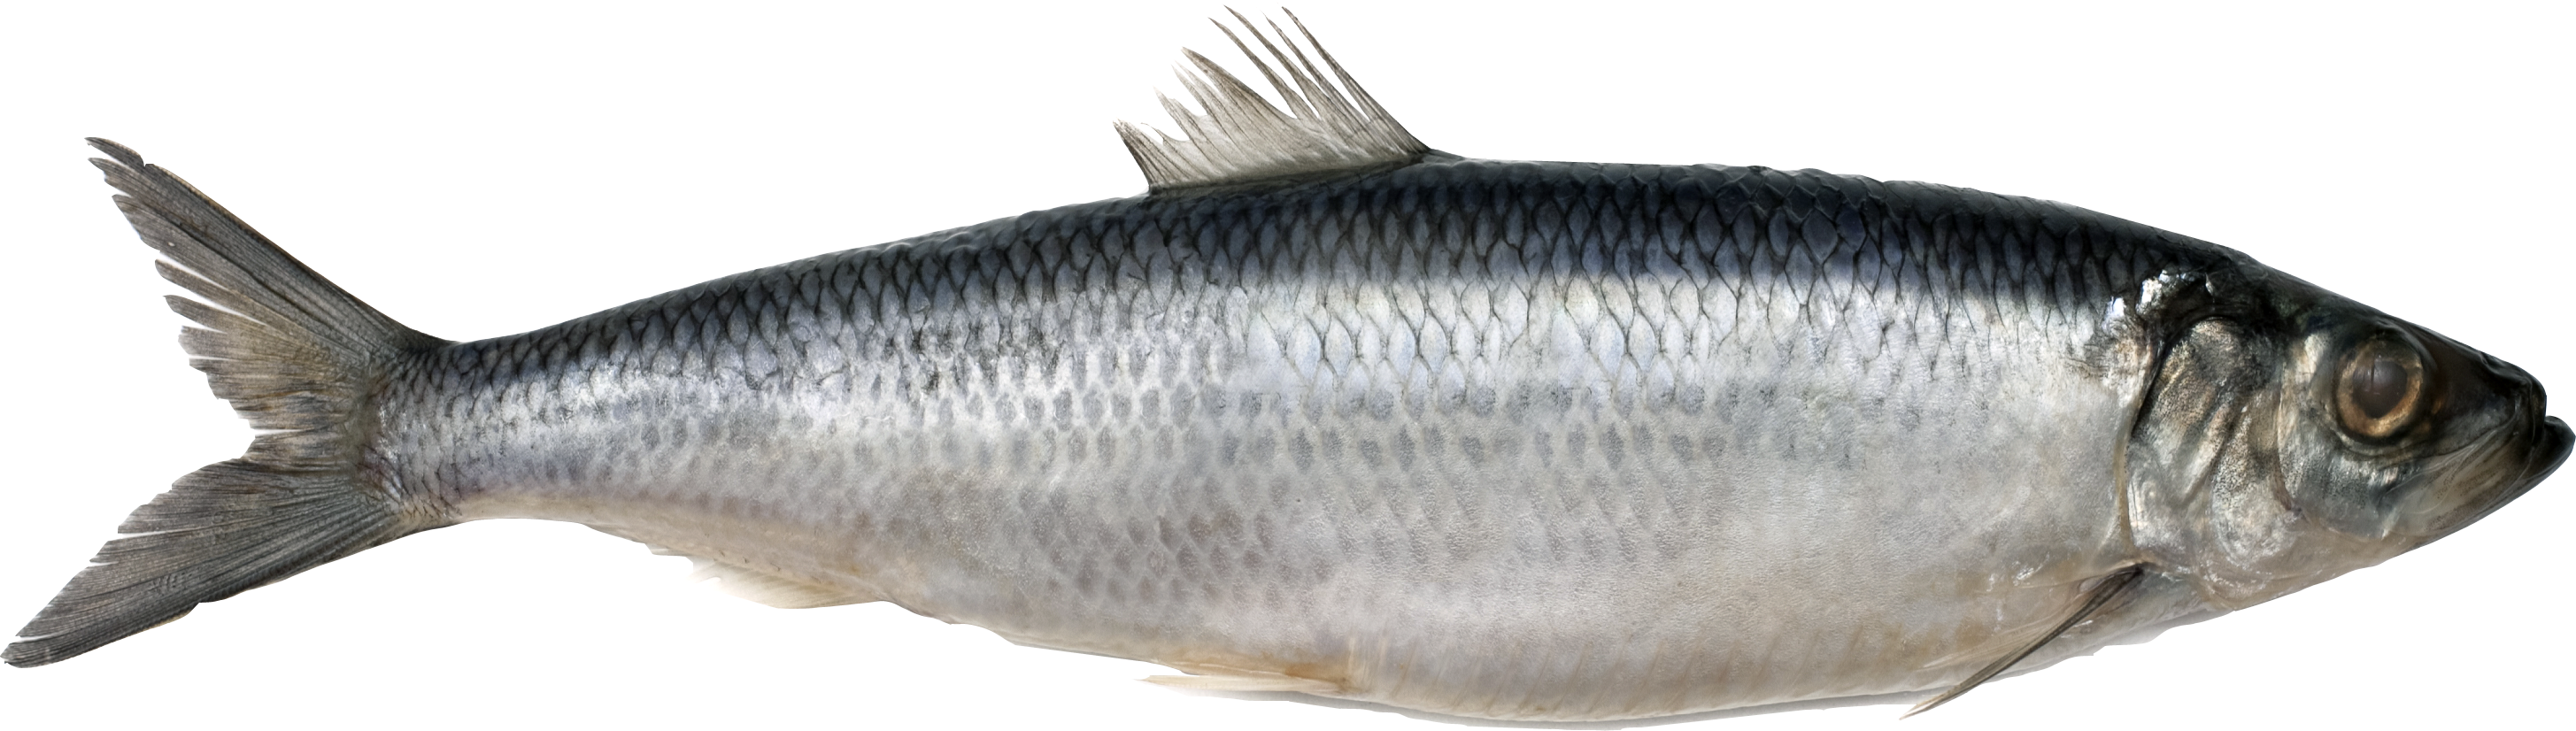 Download for free Fish Transparent PNG File